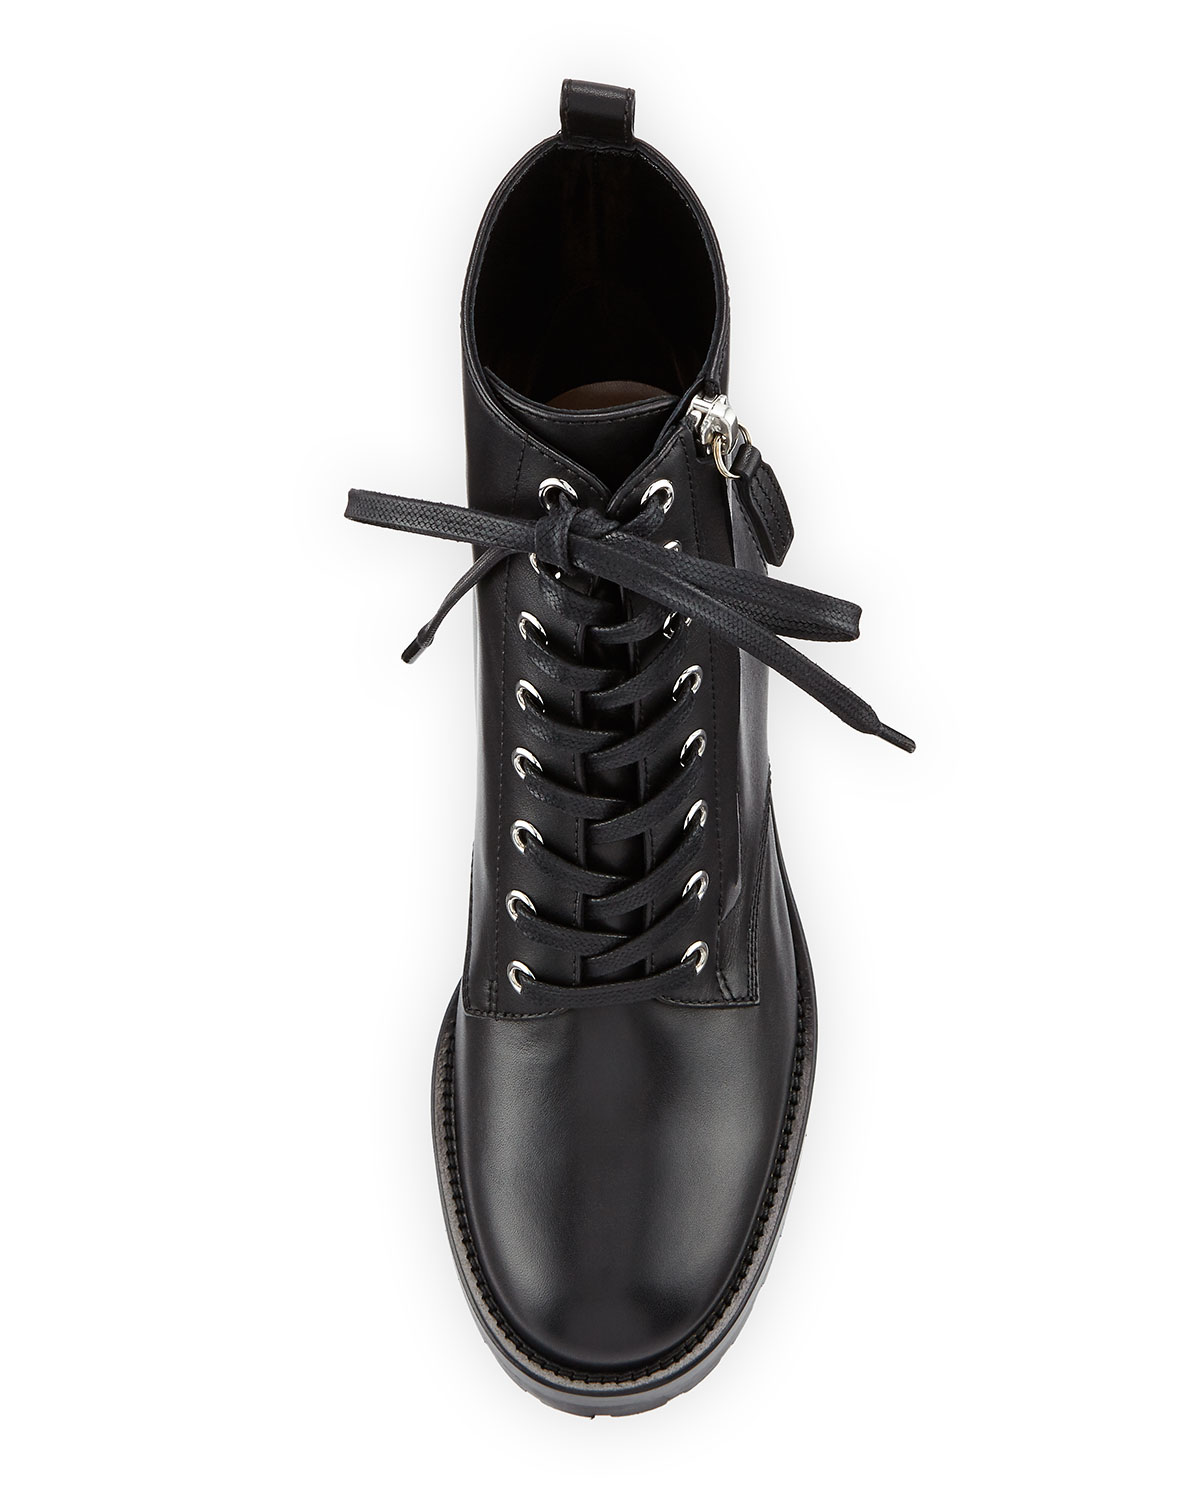 Gianvito Rossi Croft Leather Lace-Up